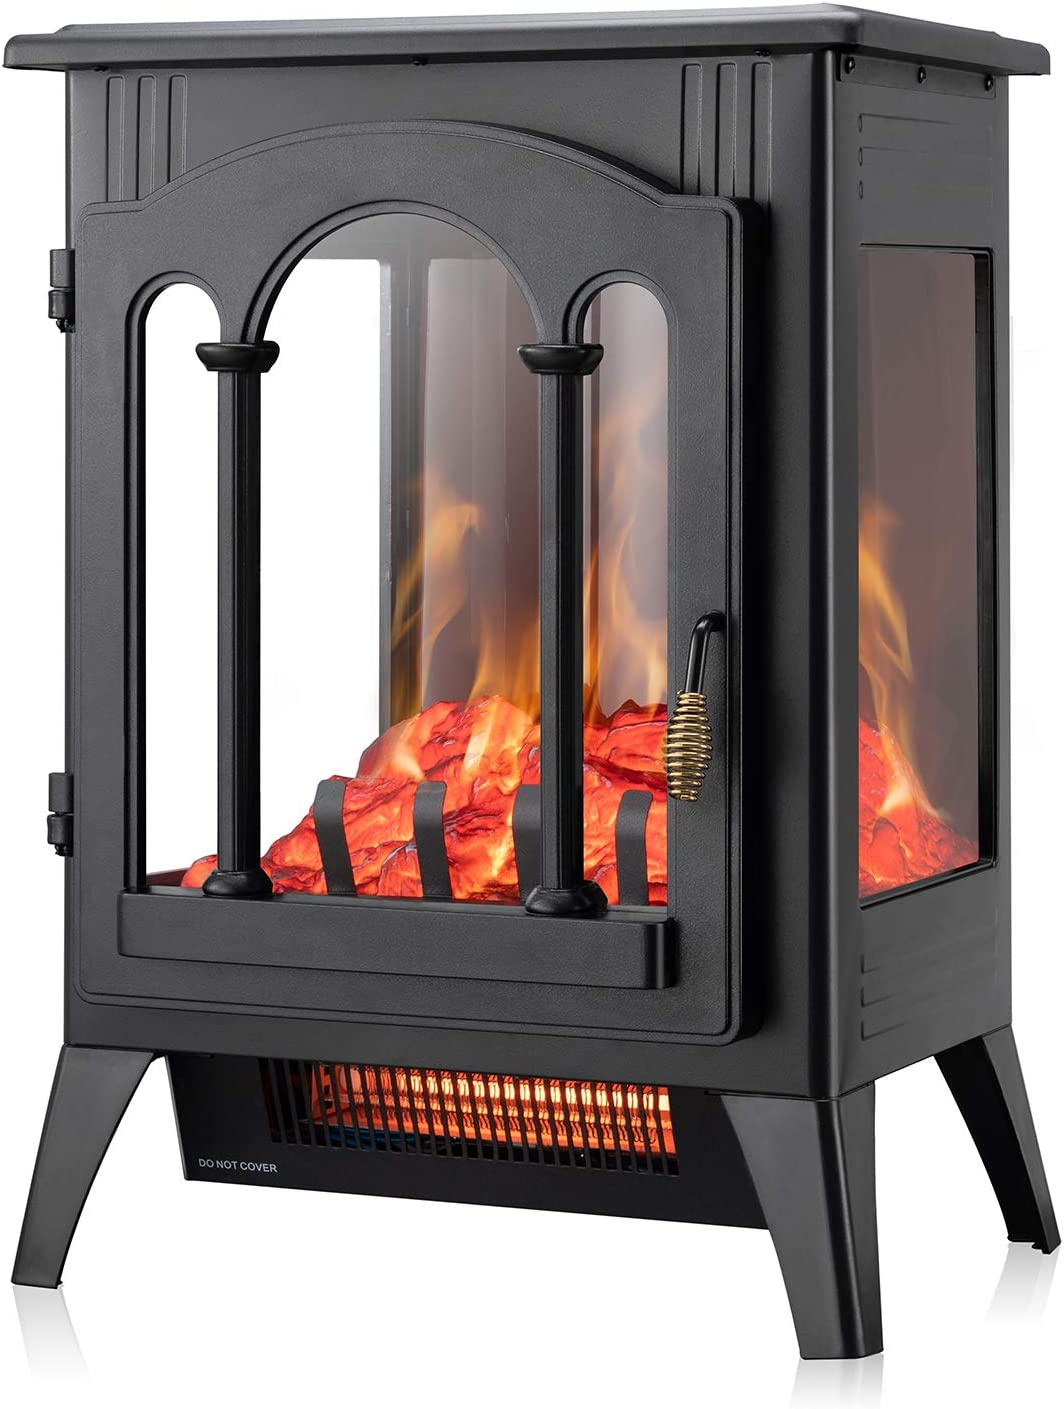 Xbeauty Electric Fireplace Stove Freestanding Fireplace Heater With Realistic Flame Indoor Electric Stove Heater Portable Infrared Thermostat Overheating Safety System 1000w 1500w 16 Inch Kitchen Dining